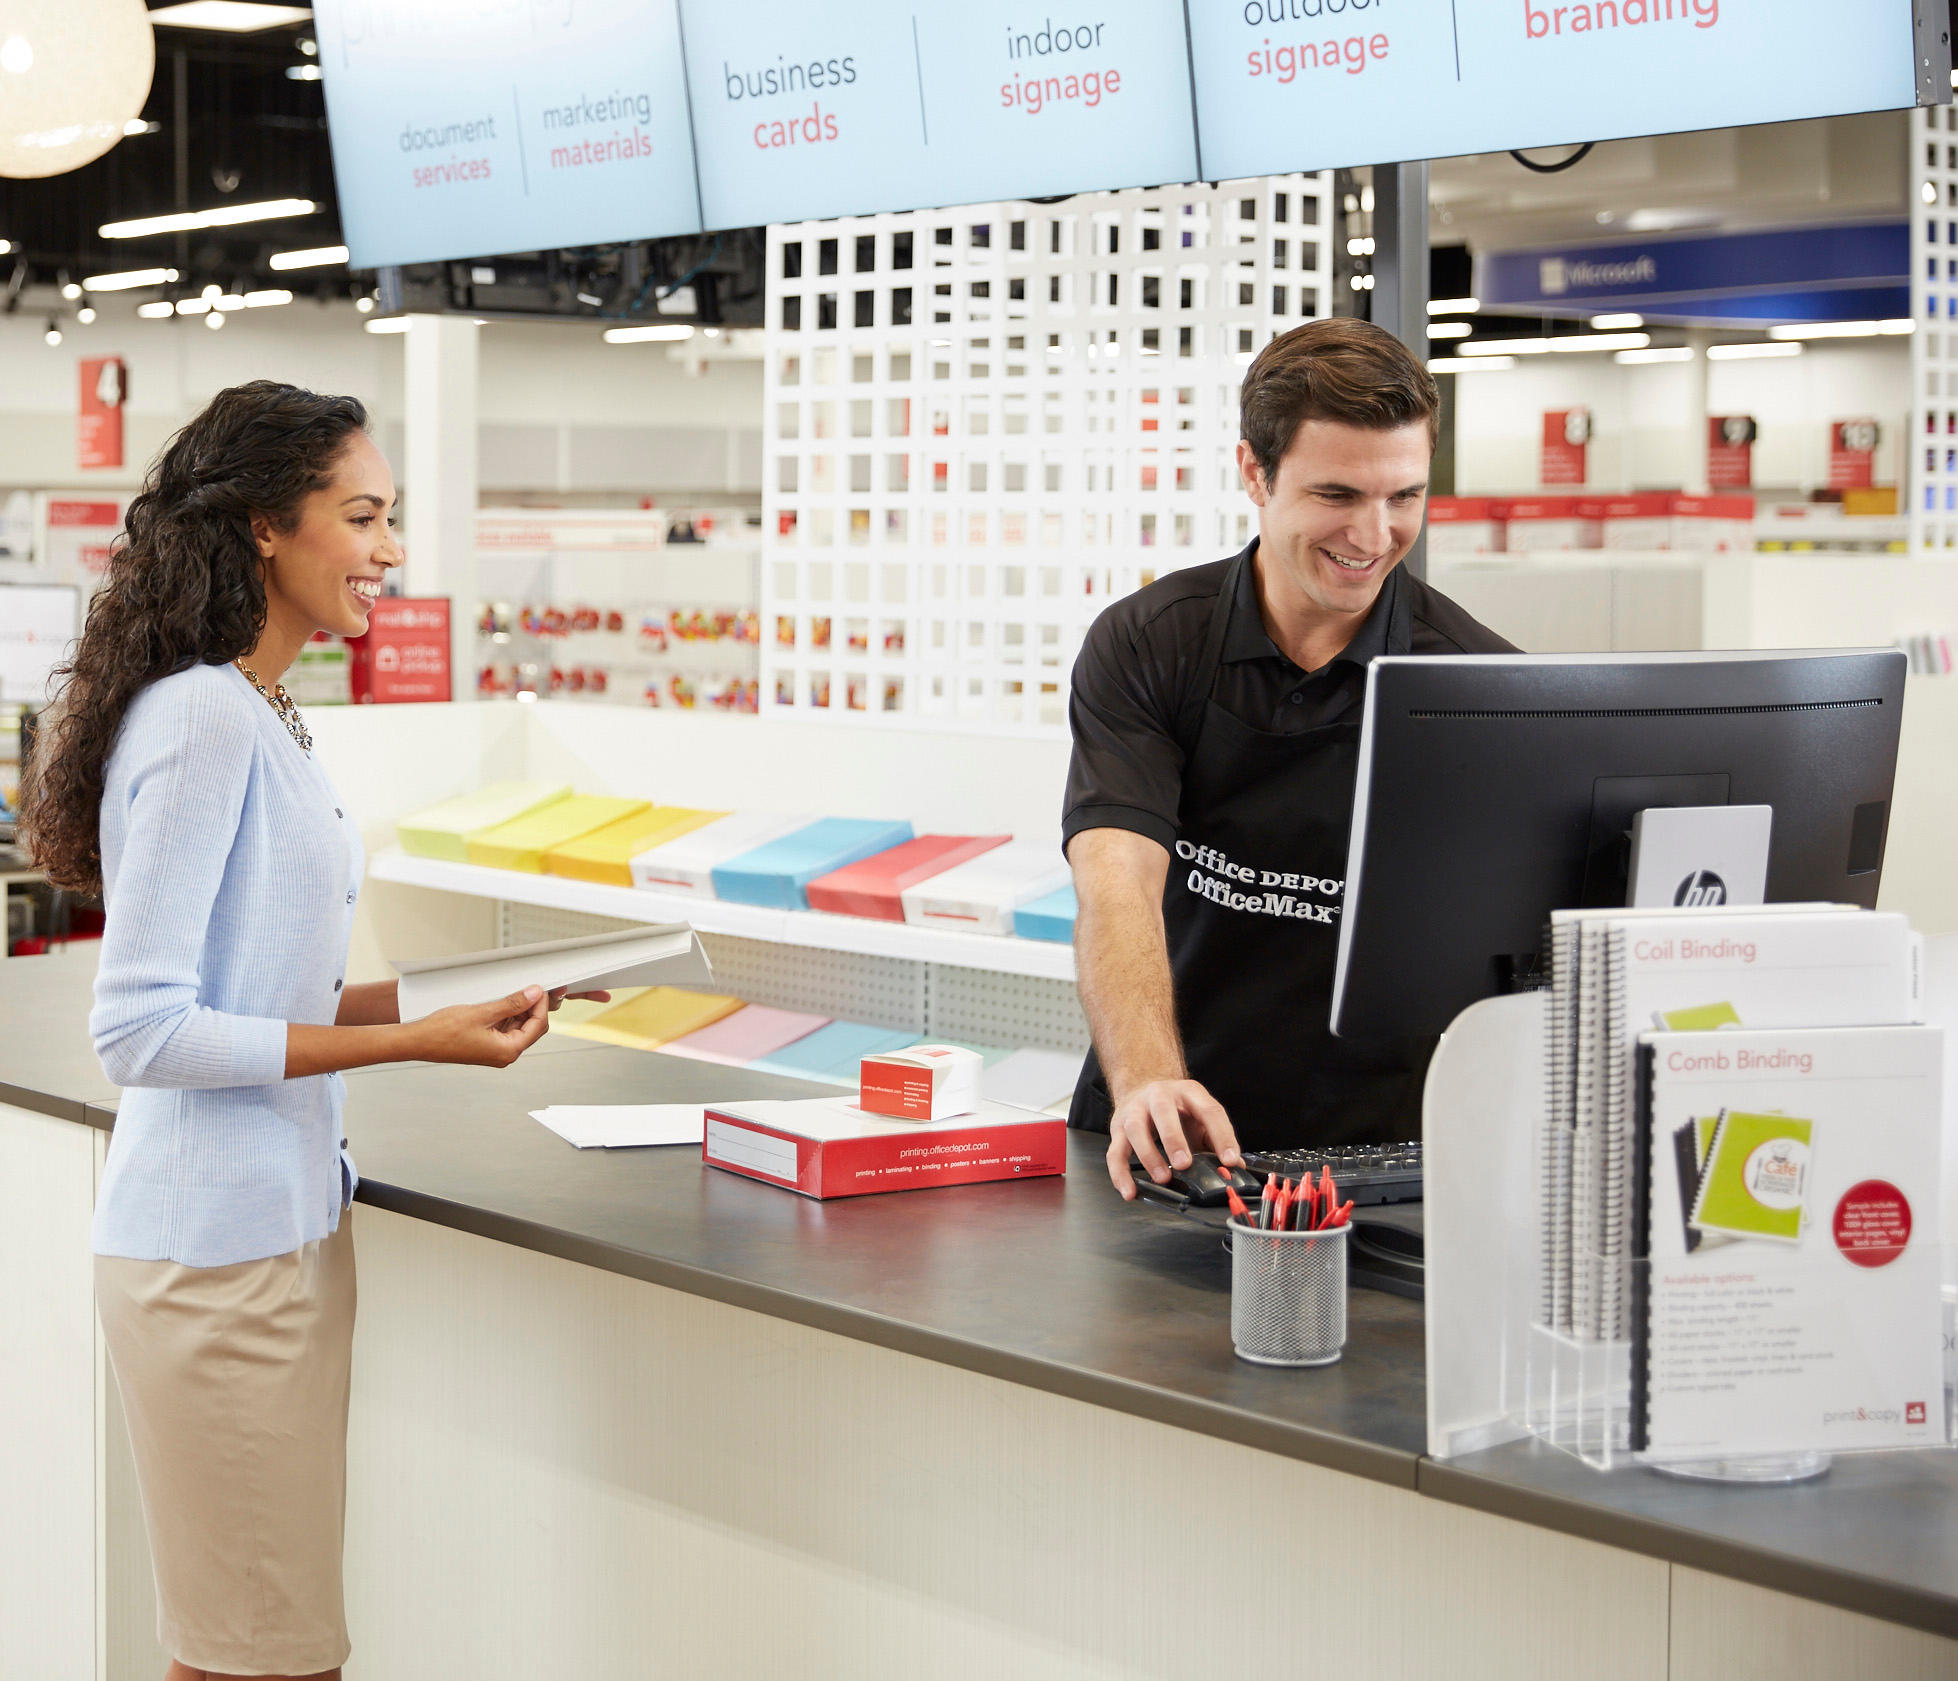 Office Depot - Print & Copy Services image 3